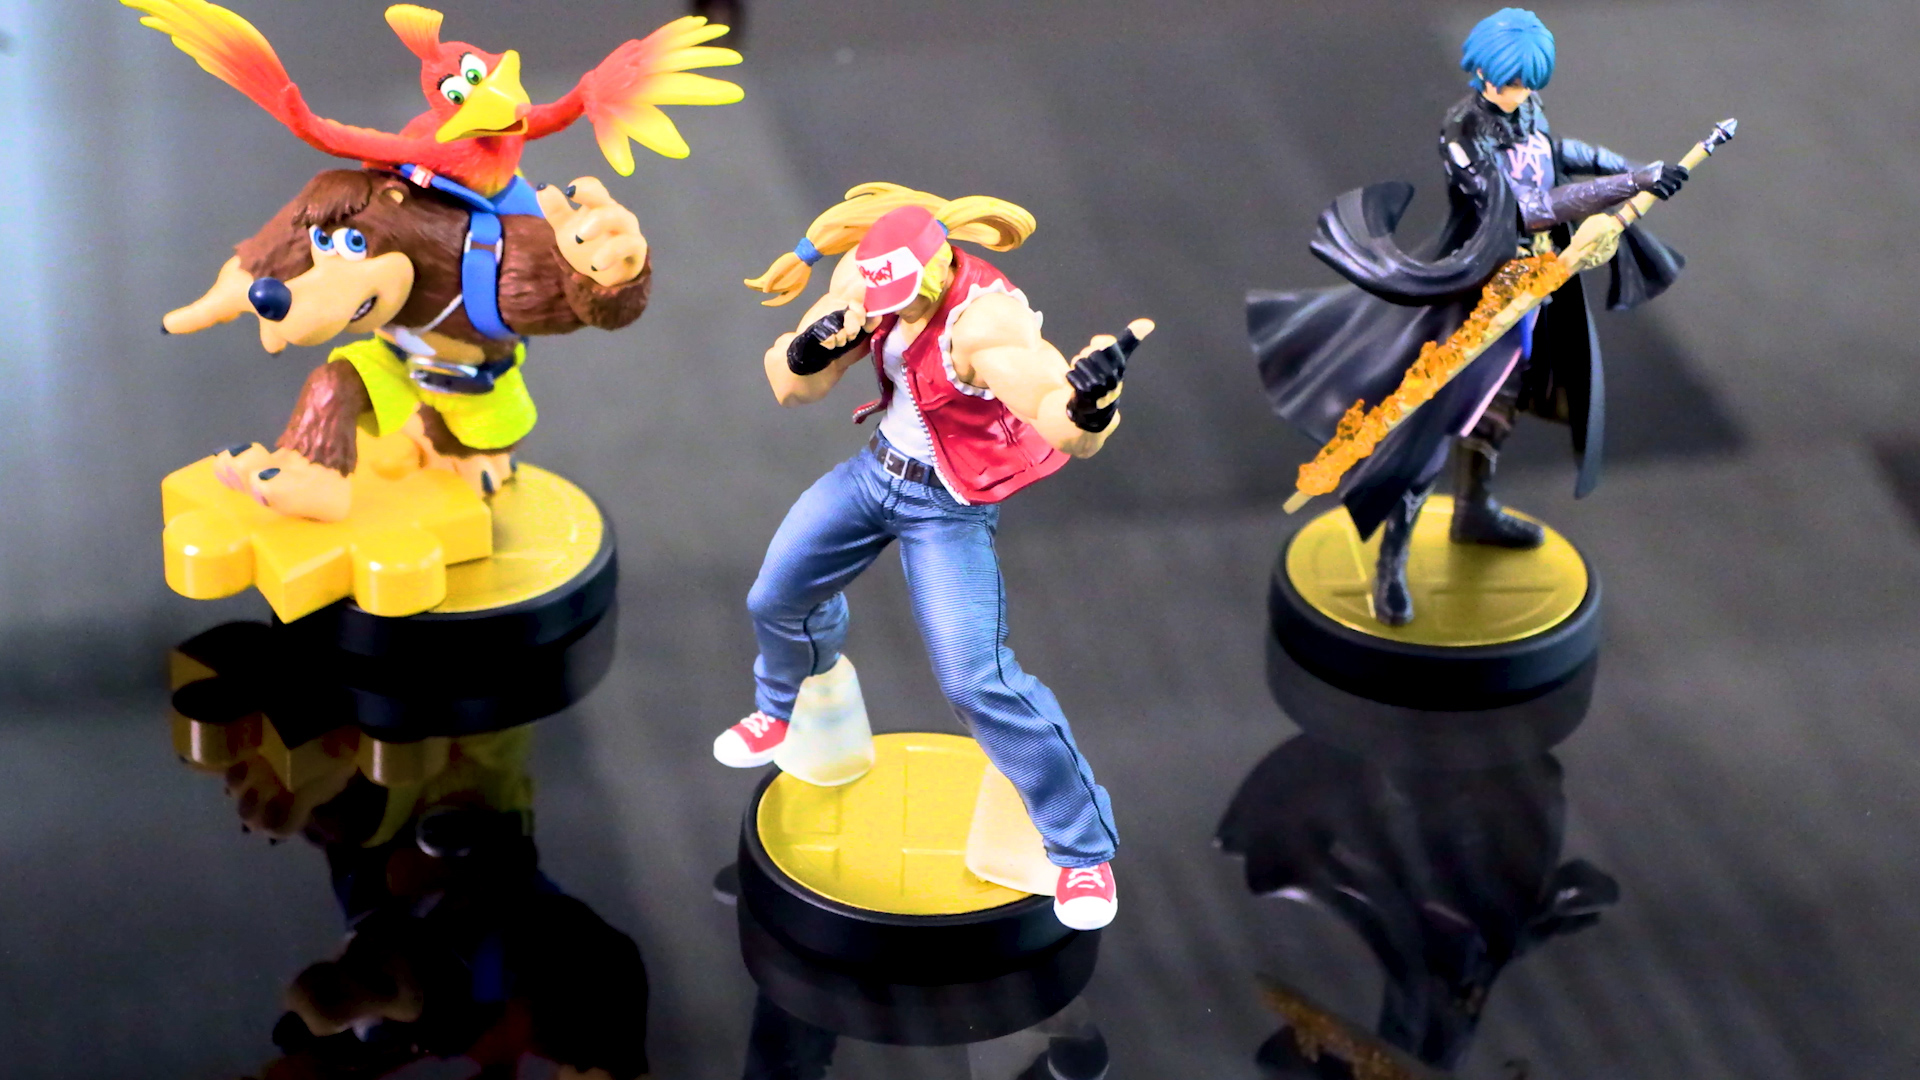 amiibo for Banjo-Kazooie, Fatal Fury's Terry, and Fire Emblem's Byleth are coming next year screenshot